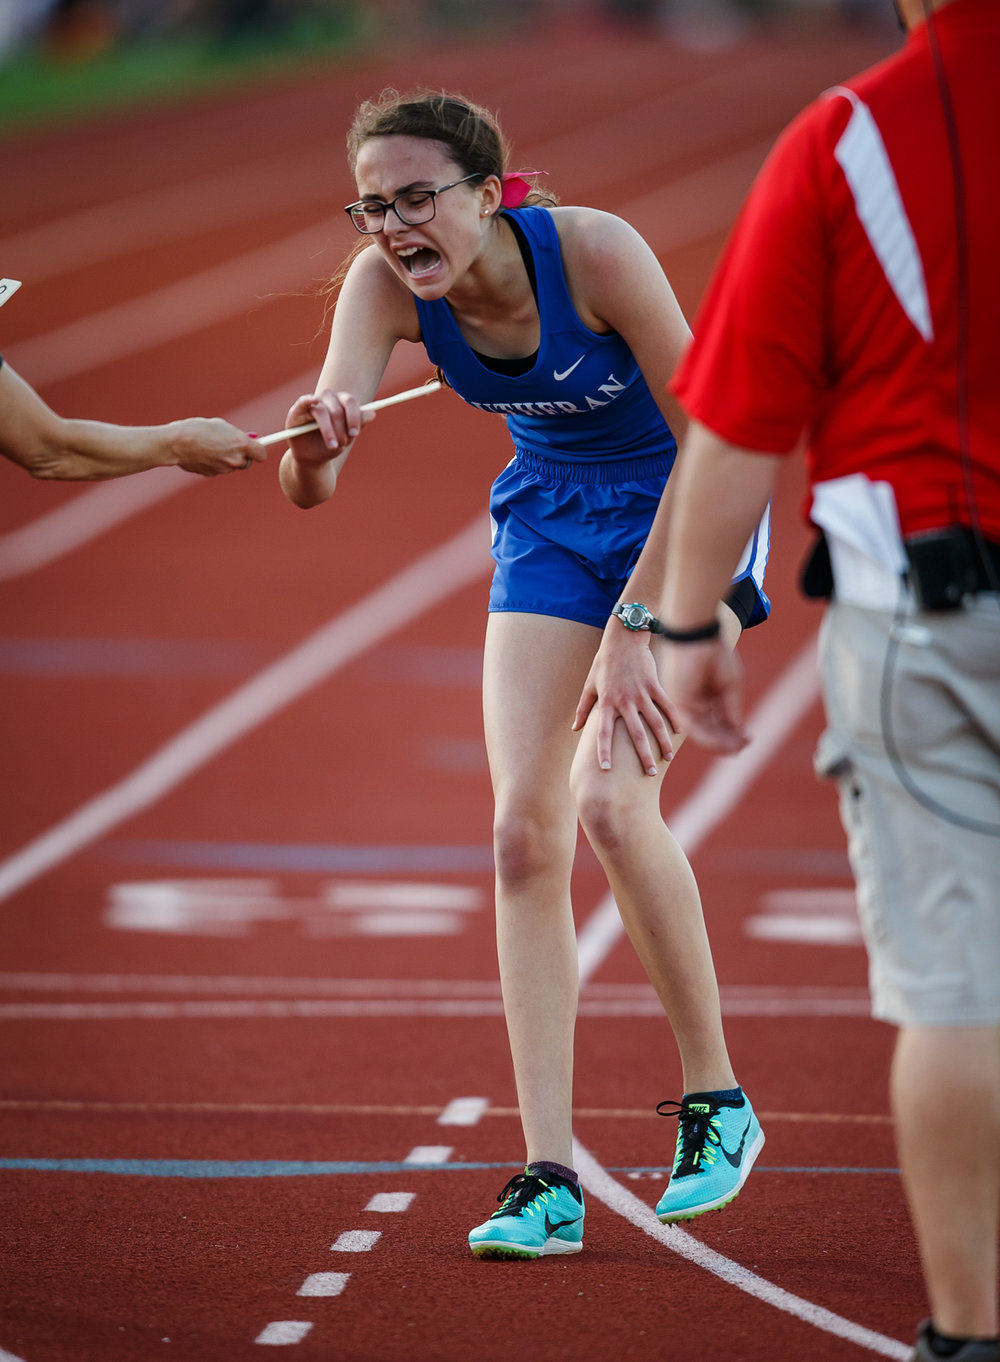 Lutheran's Bernadette Tournoux screams out after winning the Girls 1600m Run with a time of 5:42.19 during the Capital Area Classic at Glenwood High School, Monday, May 15, 2017, in Chatham, Ill. [Justin L. Fowler/The State Journal-Register]